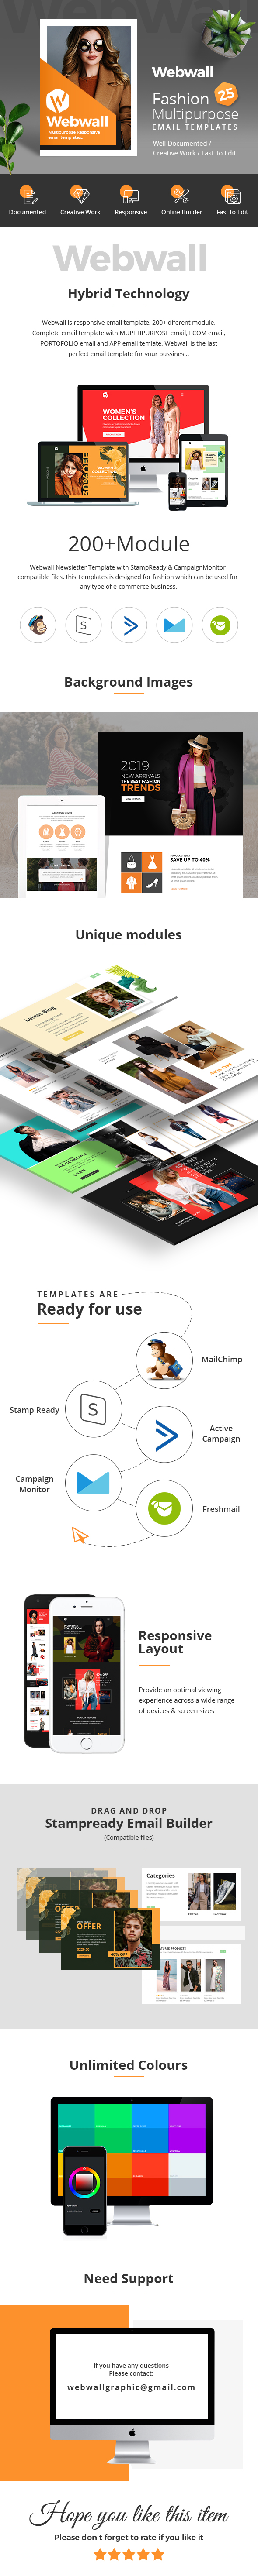 Webwall - Fashion Responsive Email Template + StampReady & CampaignMonitor compatible files - 1